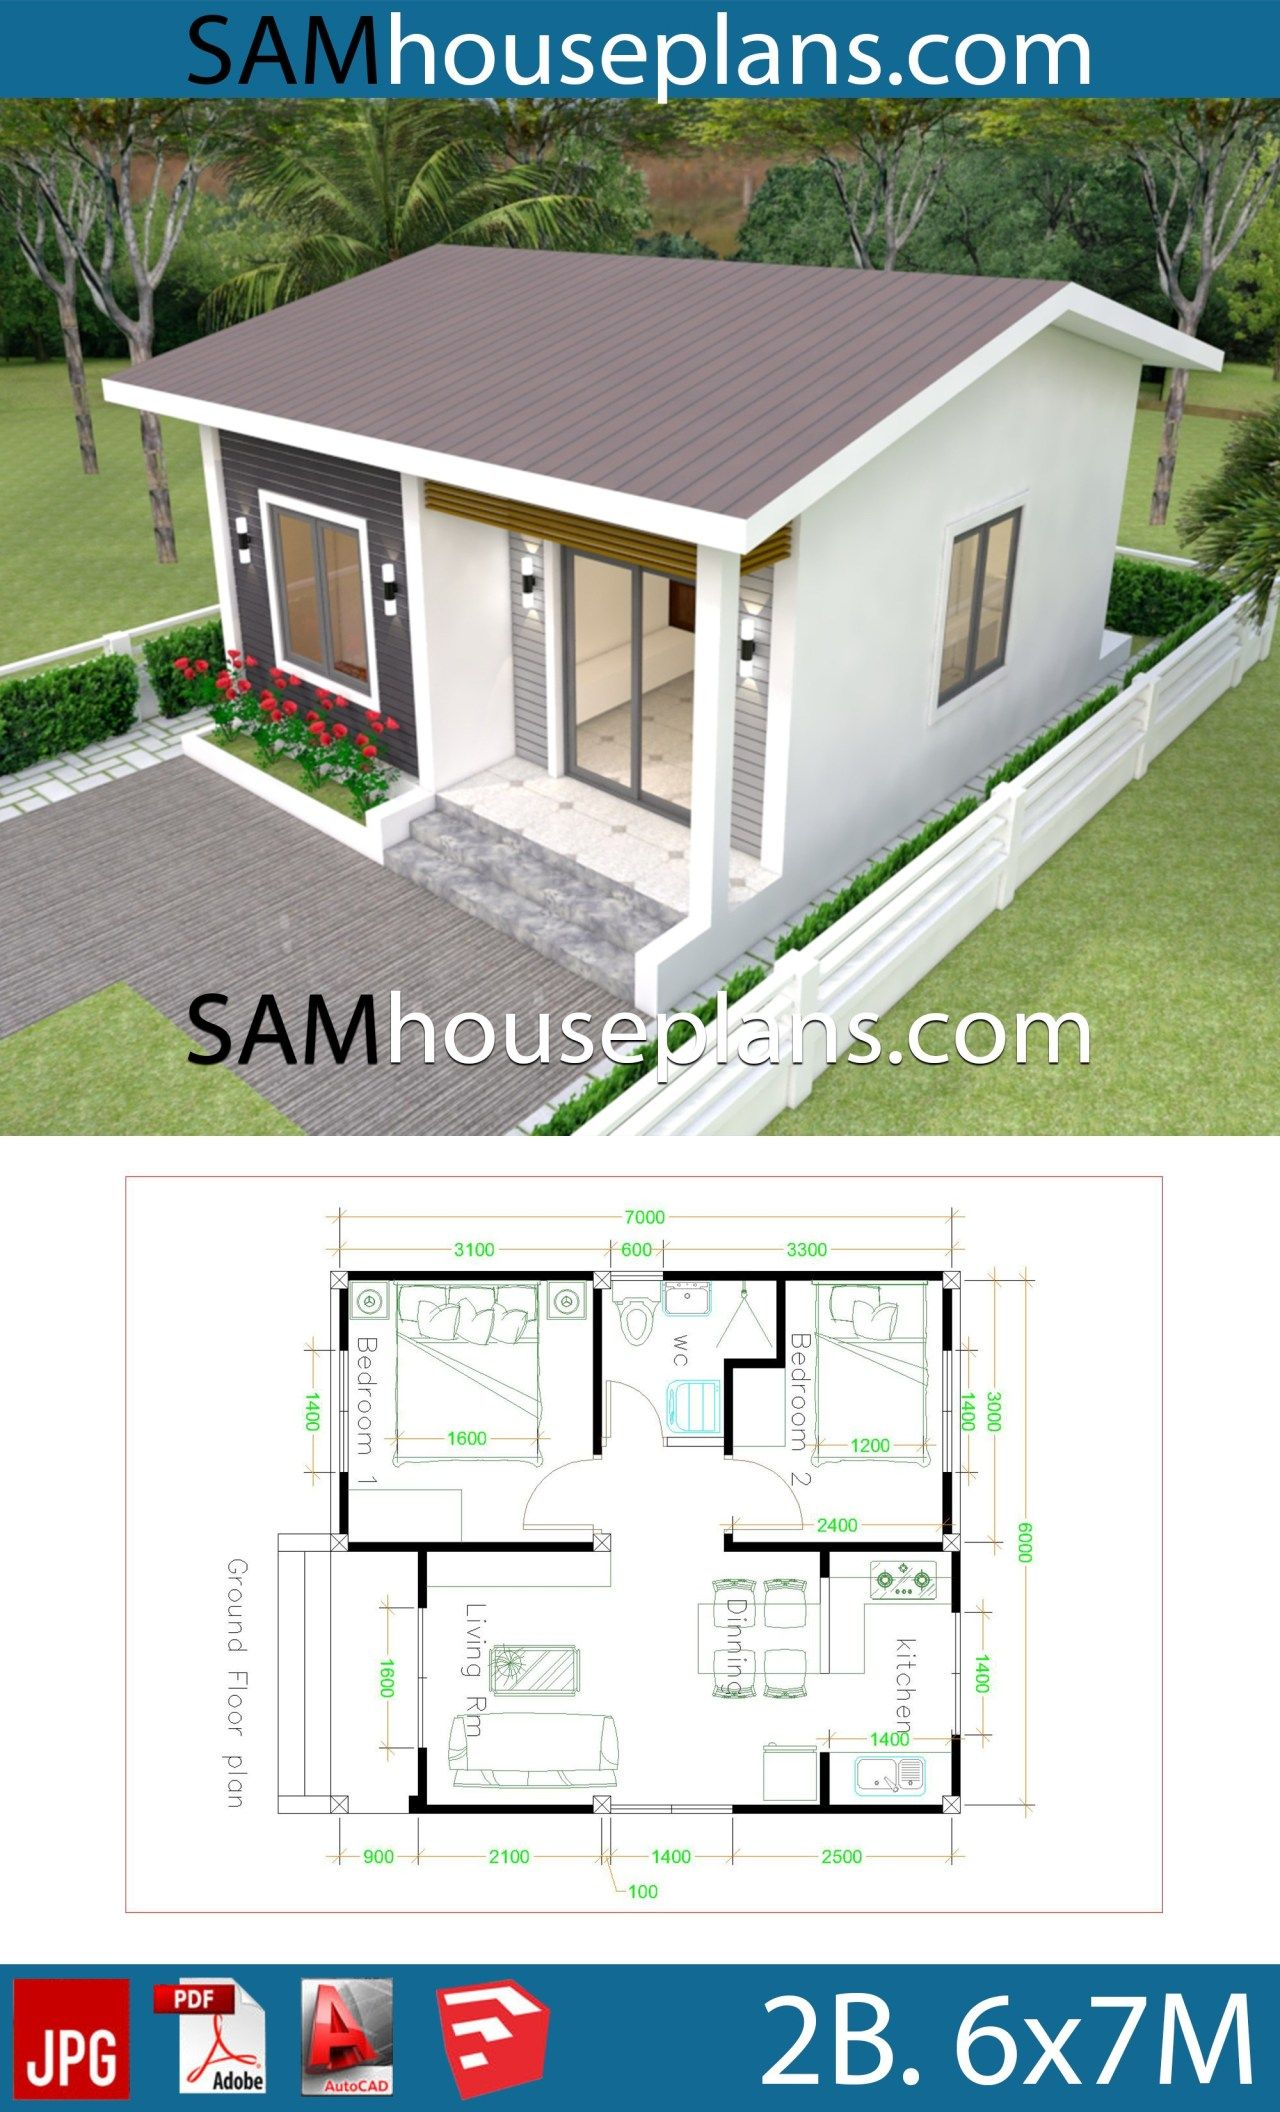 House Plans 6x7m With 2 Bedrooms Sam House Plans Little House Plans Small House Design Plans Two Bedroom House